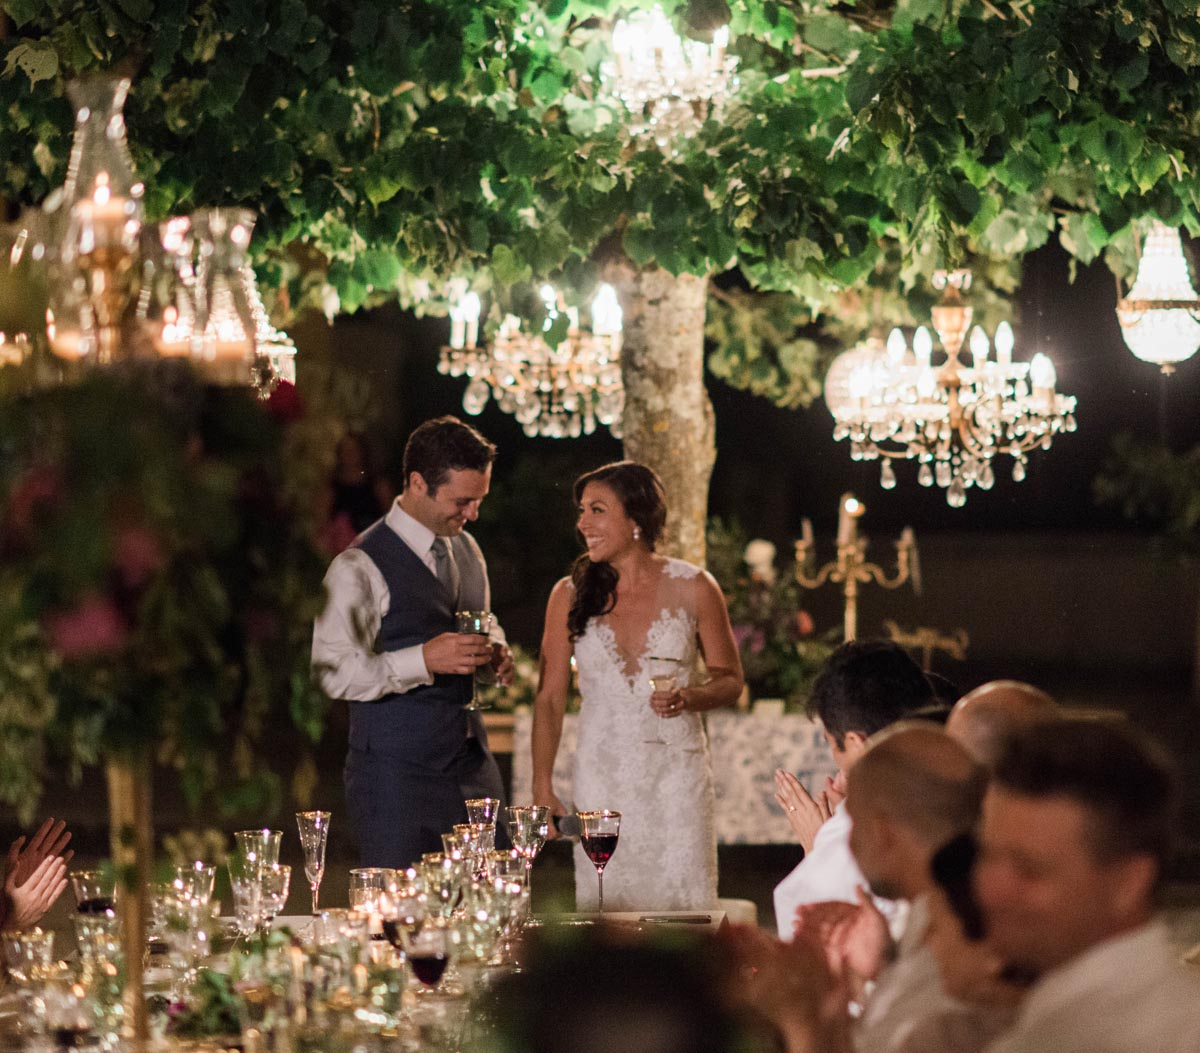 wedding dinner with chandeliers in the trees in a Tuscan vineyard